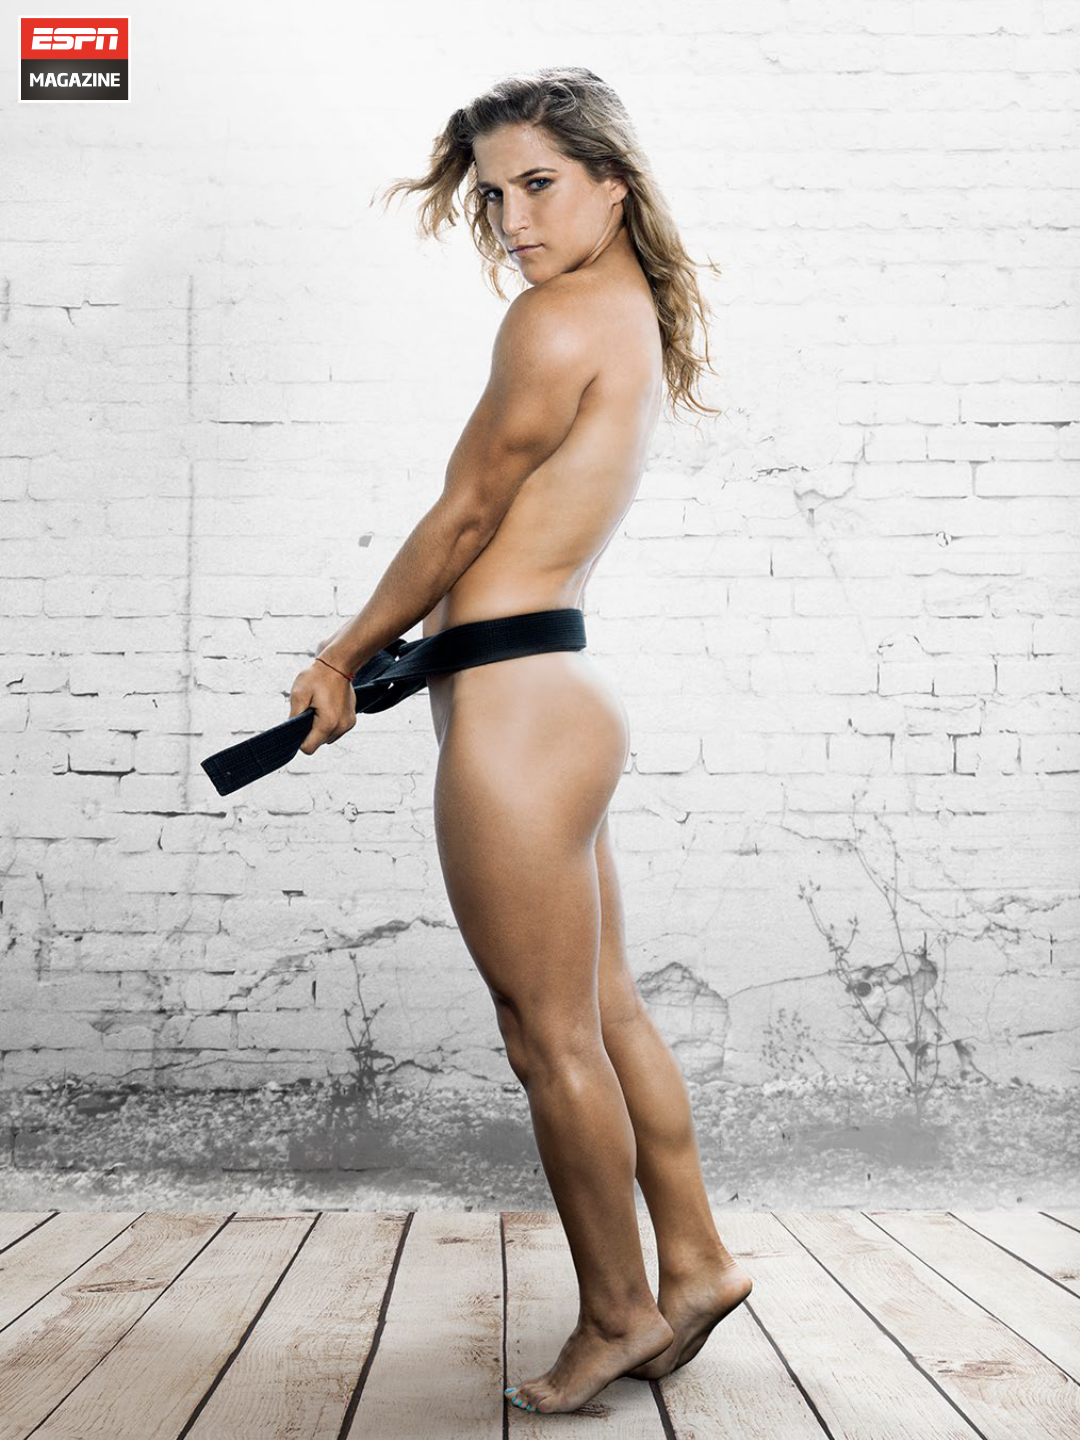 ESPN BODY ISSUE 2015 nudes (16 pictures), hot Paparazzi, Snapchat, legs 2019